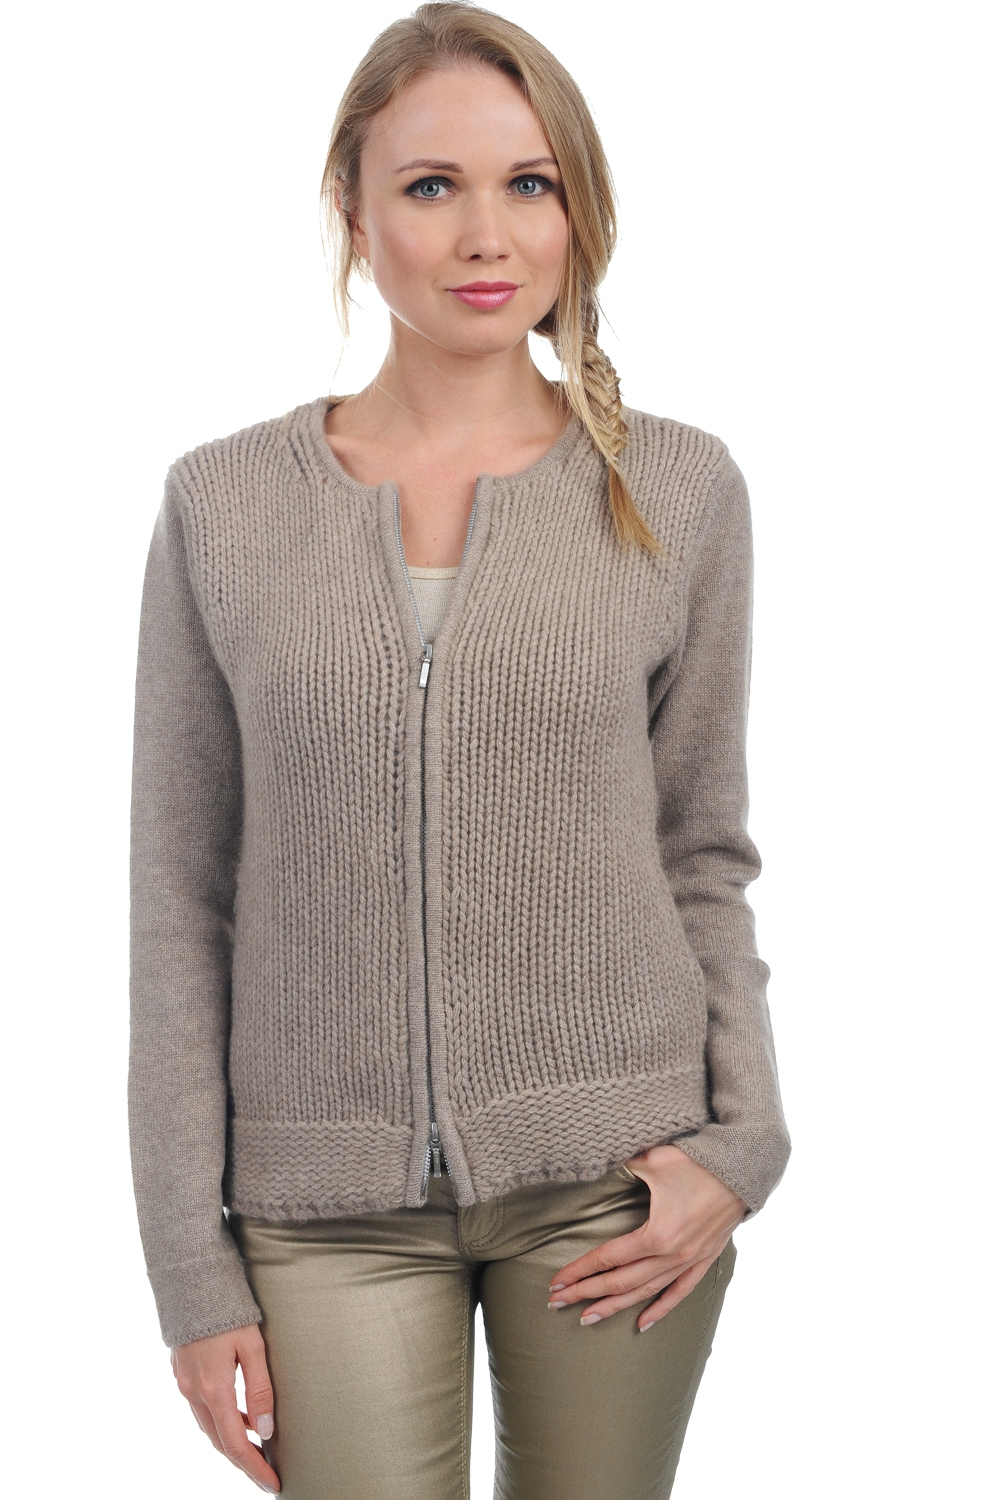 Adopt a cashmere look with a woman cardigan from Mahogany